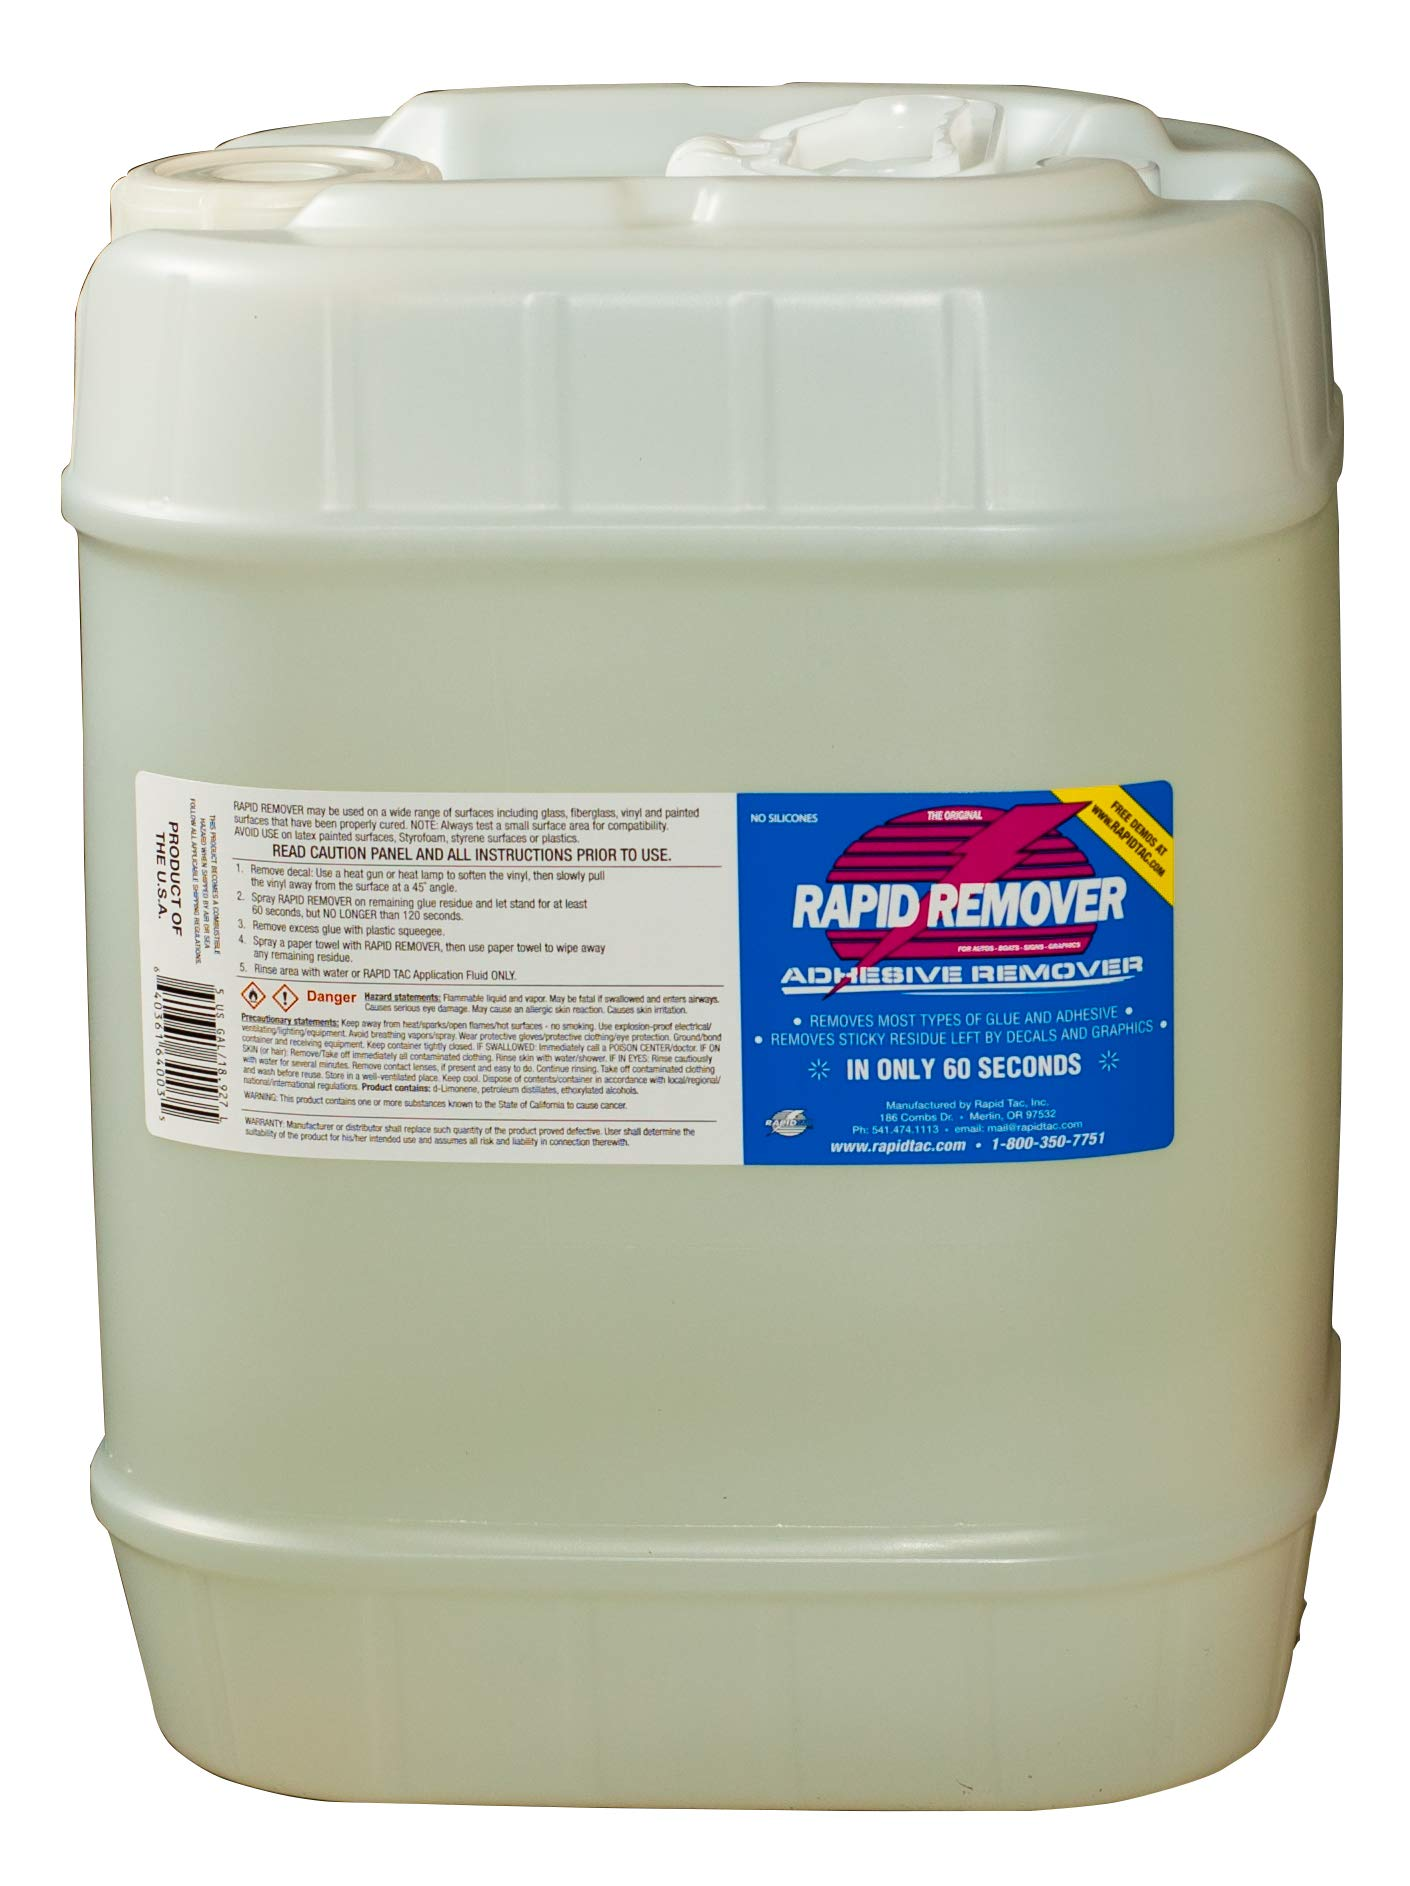 Rapid Remover Adhesive Decal Remover for Vinyl Wraps Autos Boats Signs Graphics Stickers - 5 Gallon Jug (640 oz) by RapidTac (Image #1)